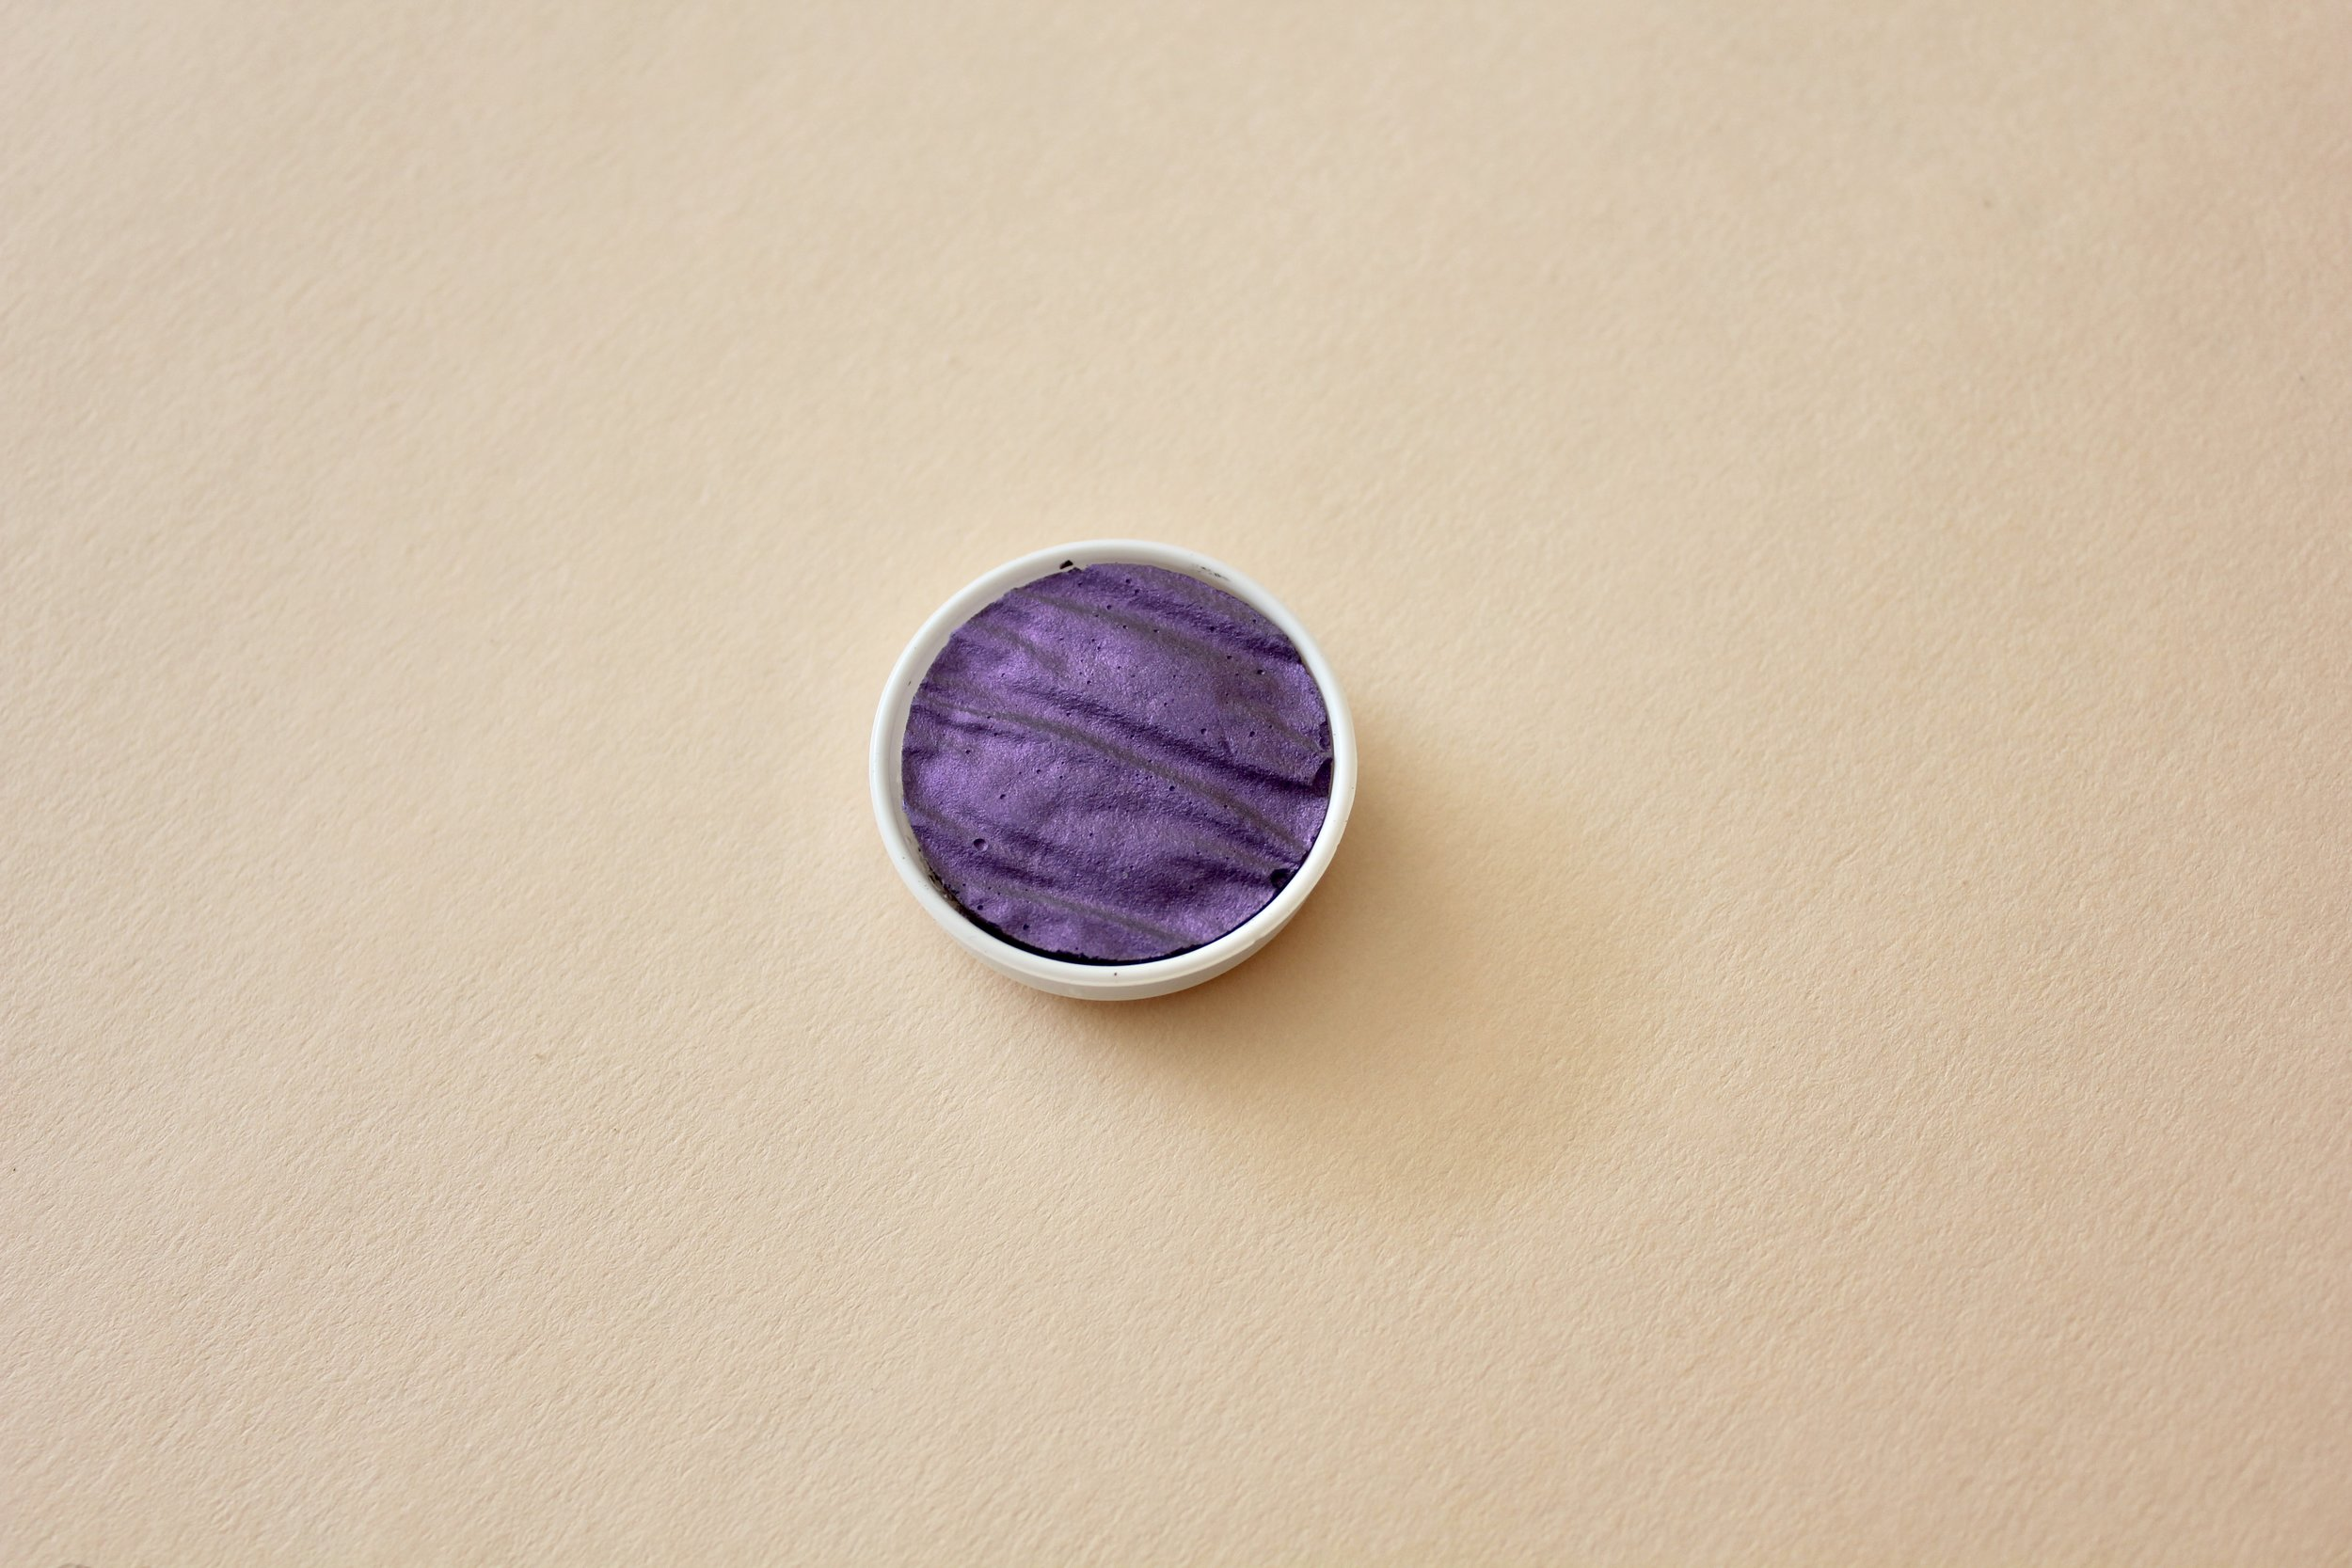 LR00097 Coliro Deep Purple 30mm ($8)